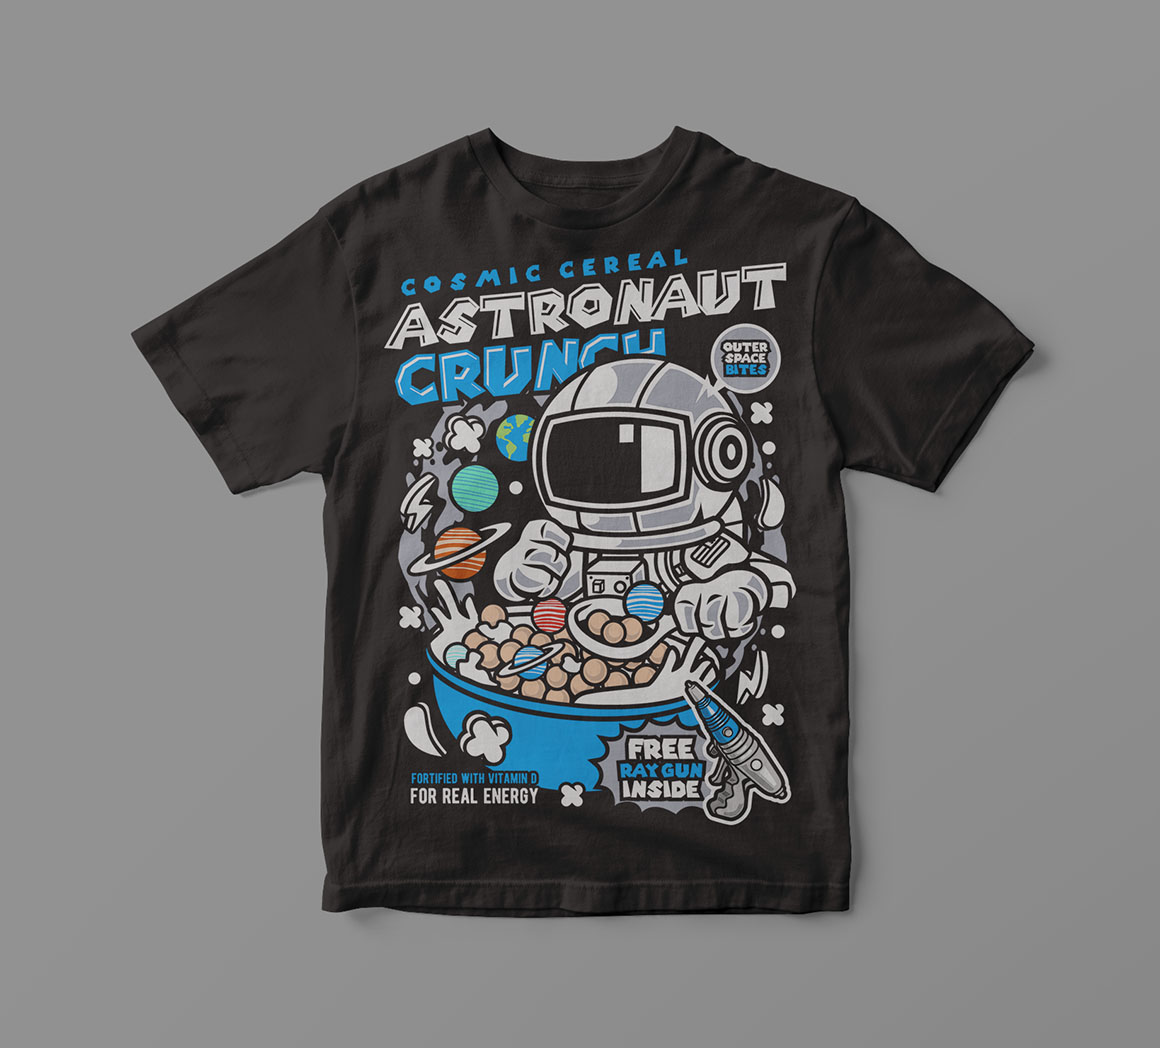 224 Pro Cartoon T Shirt Designs Dealjumbo Discounted Design